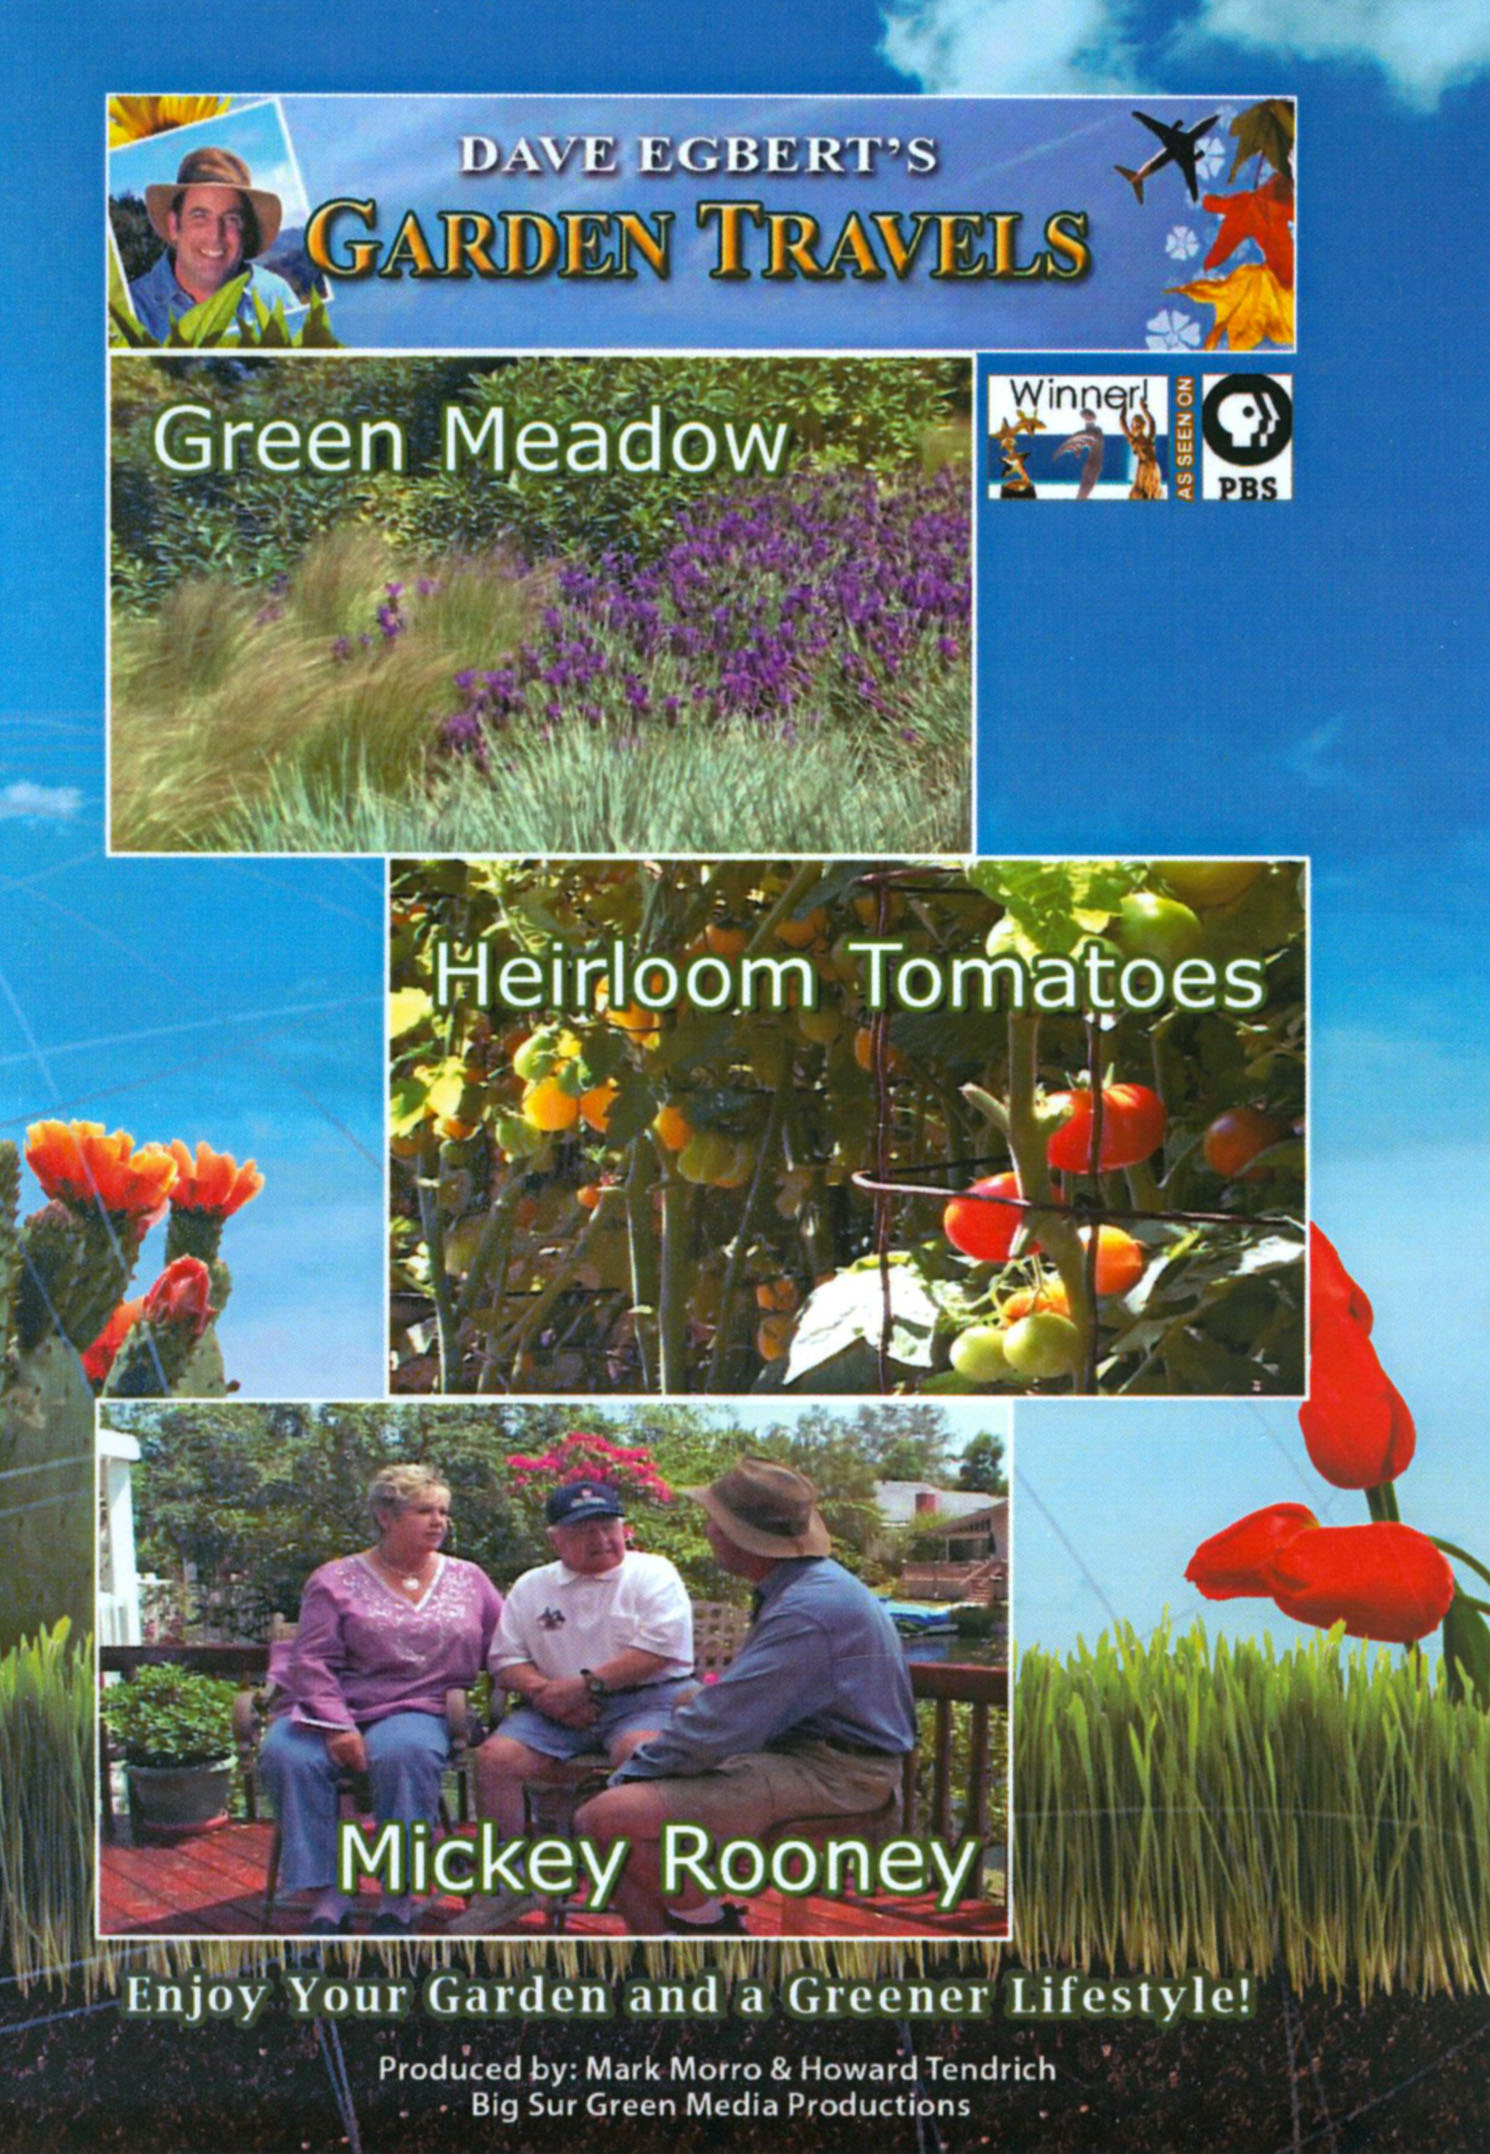 Dave Egbert's Garden Travels: Green Meadow/Heirloom tomatoes/Mickey Rooney